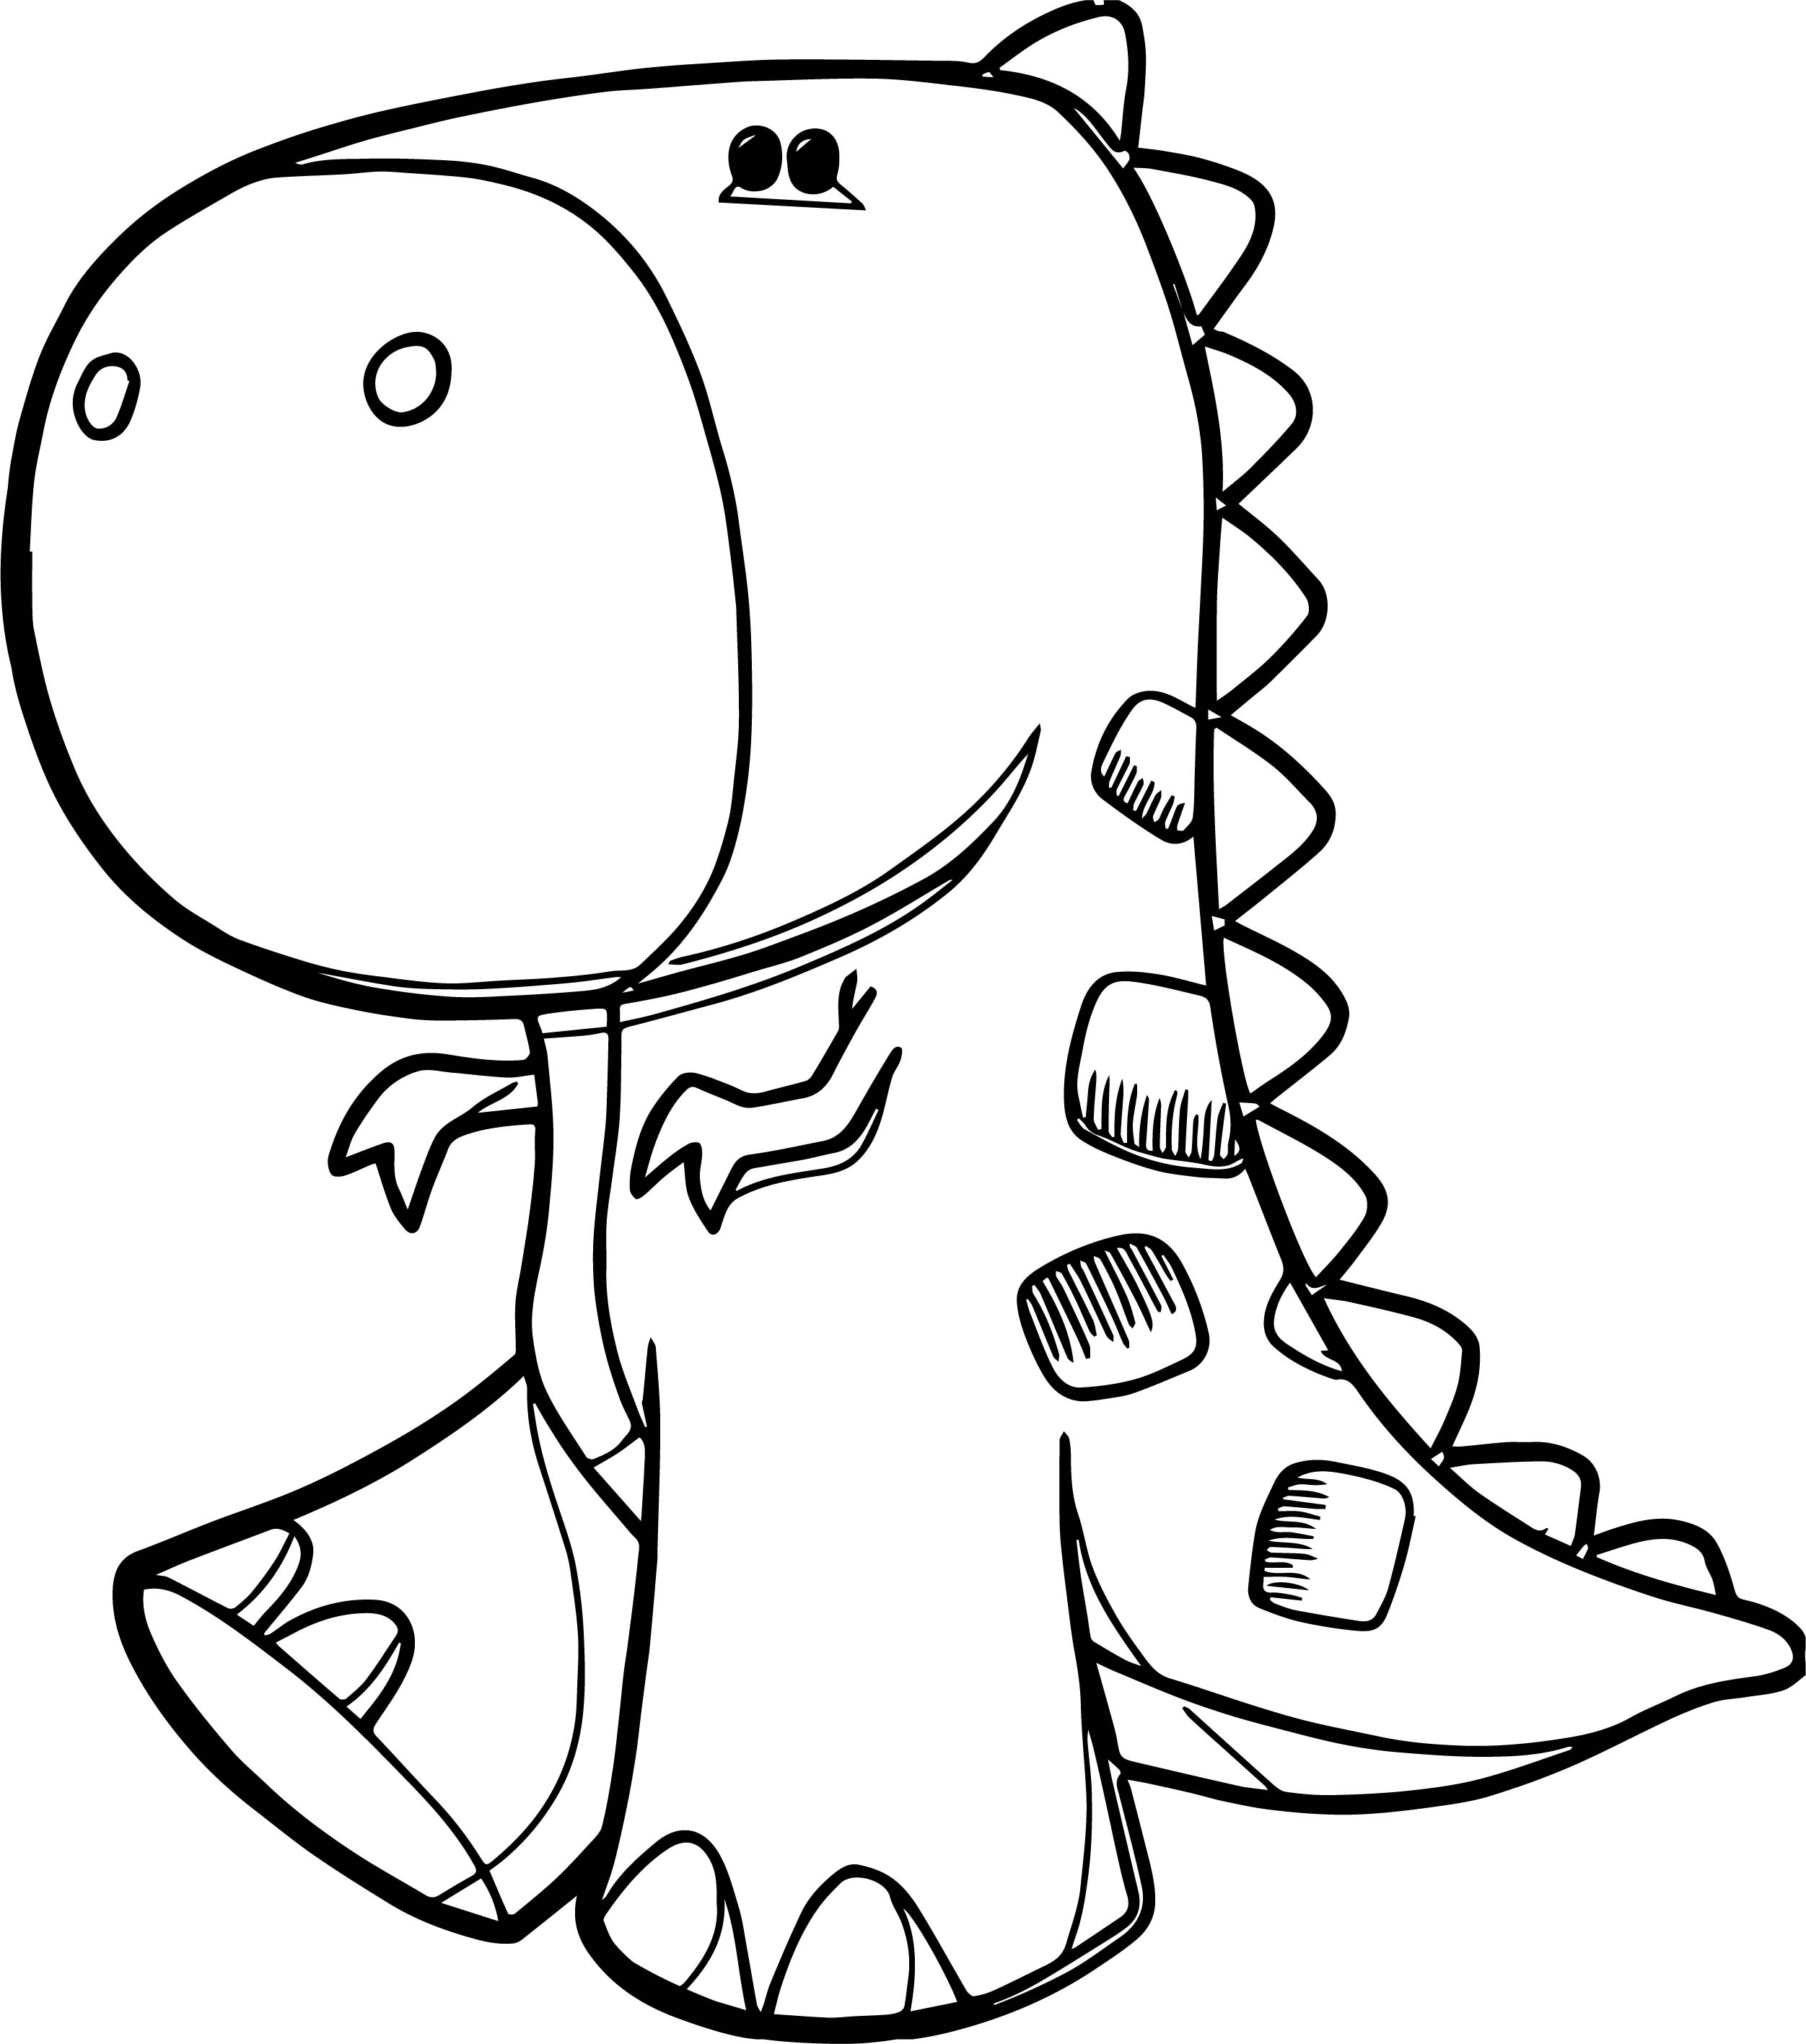 Dinosaur Done Coloring Page